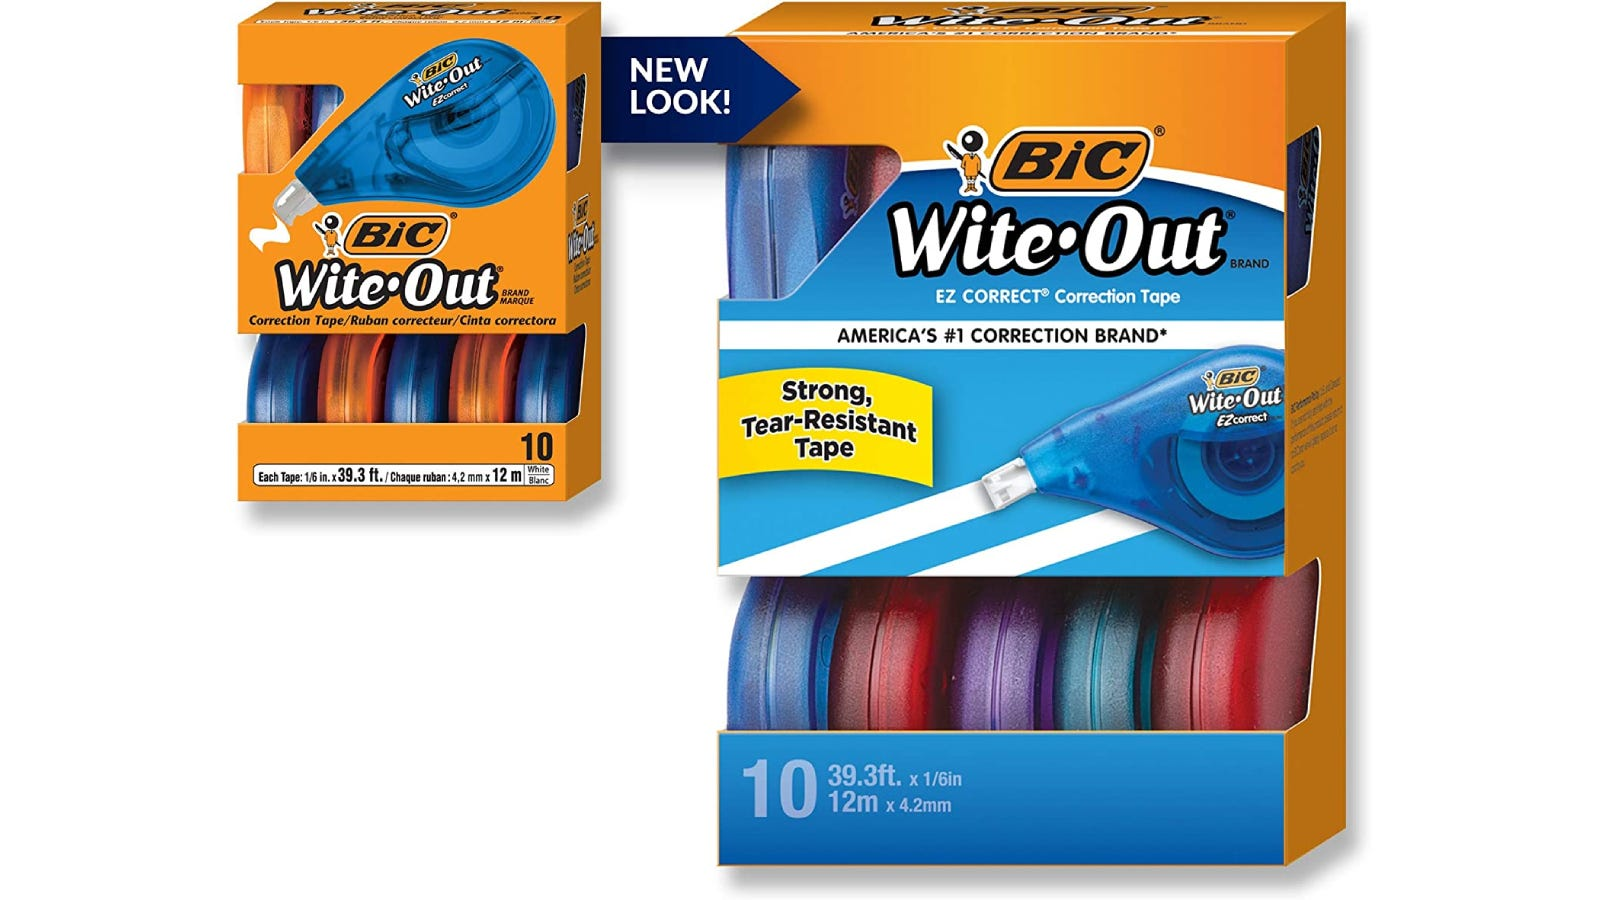 BIC Wite-Out correction tape within its packaging.